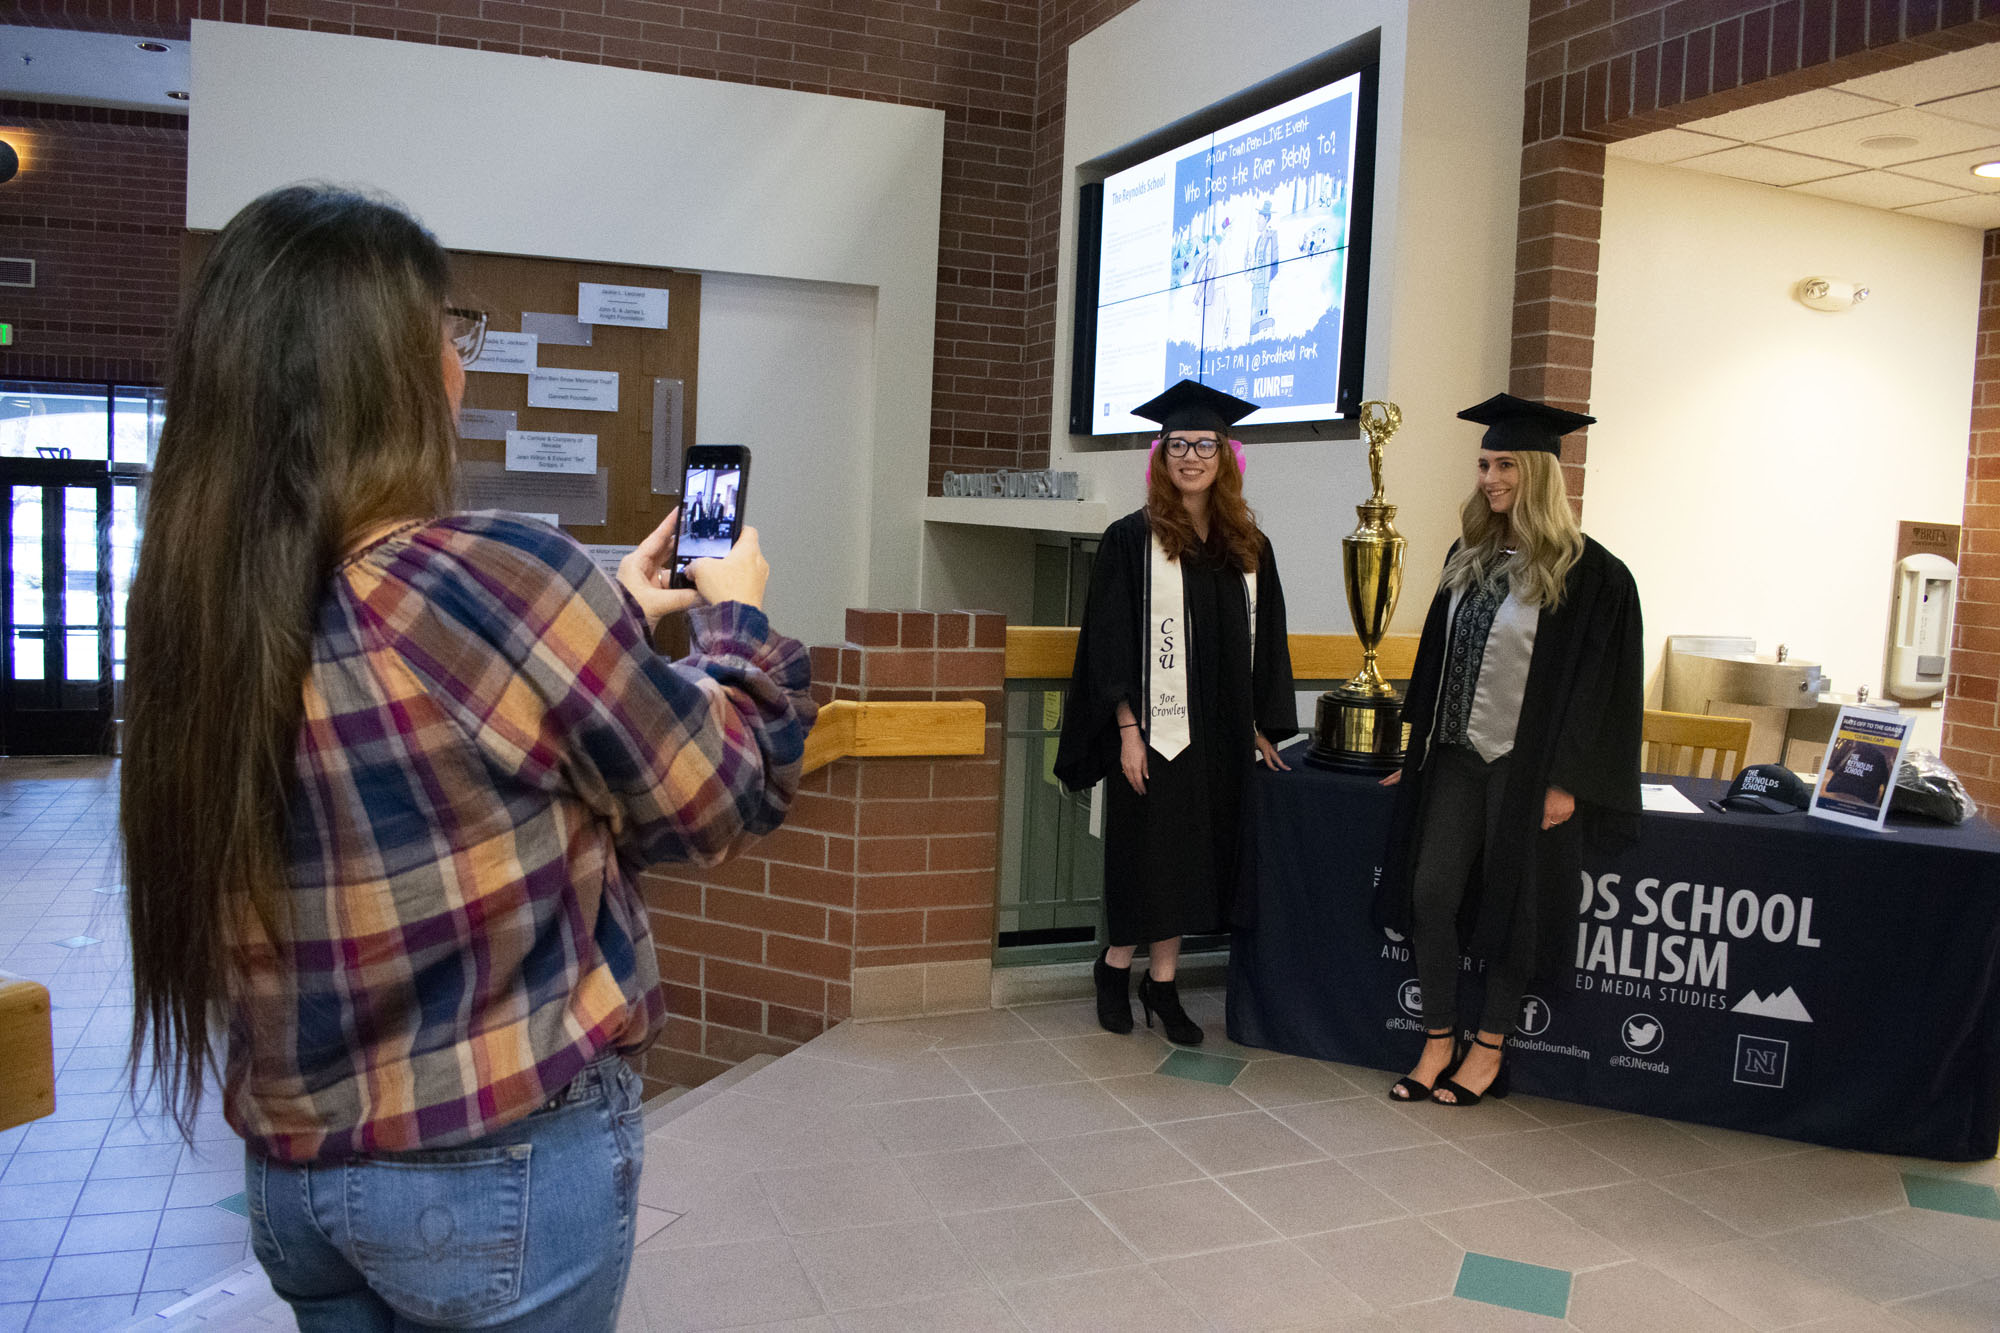 A woman takes a photo of two students.